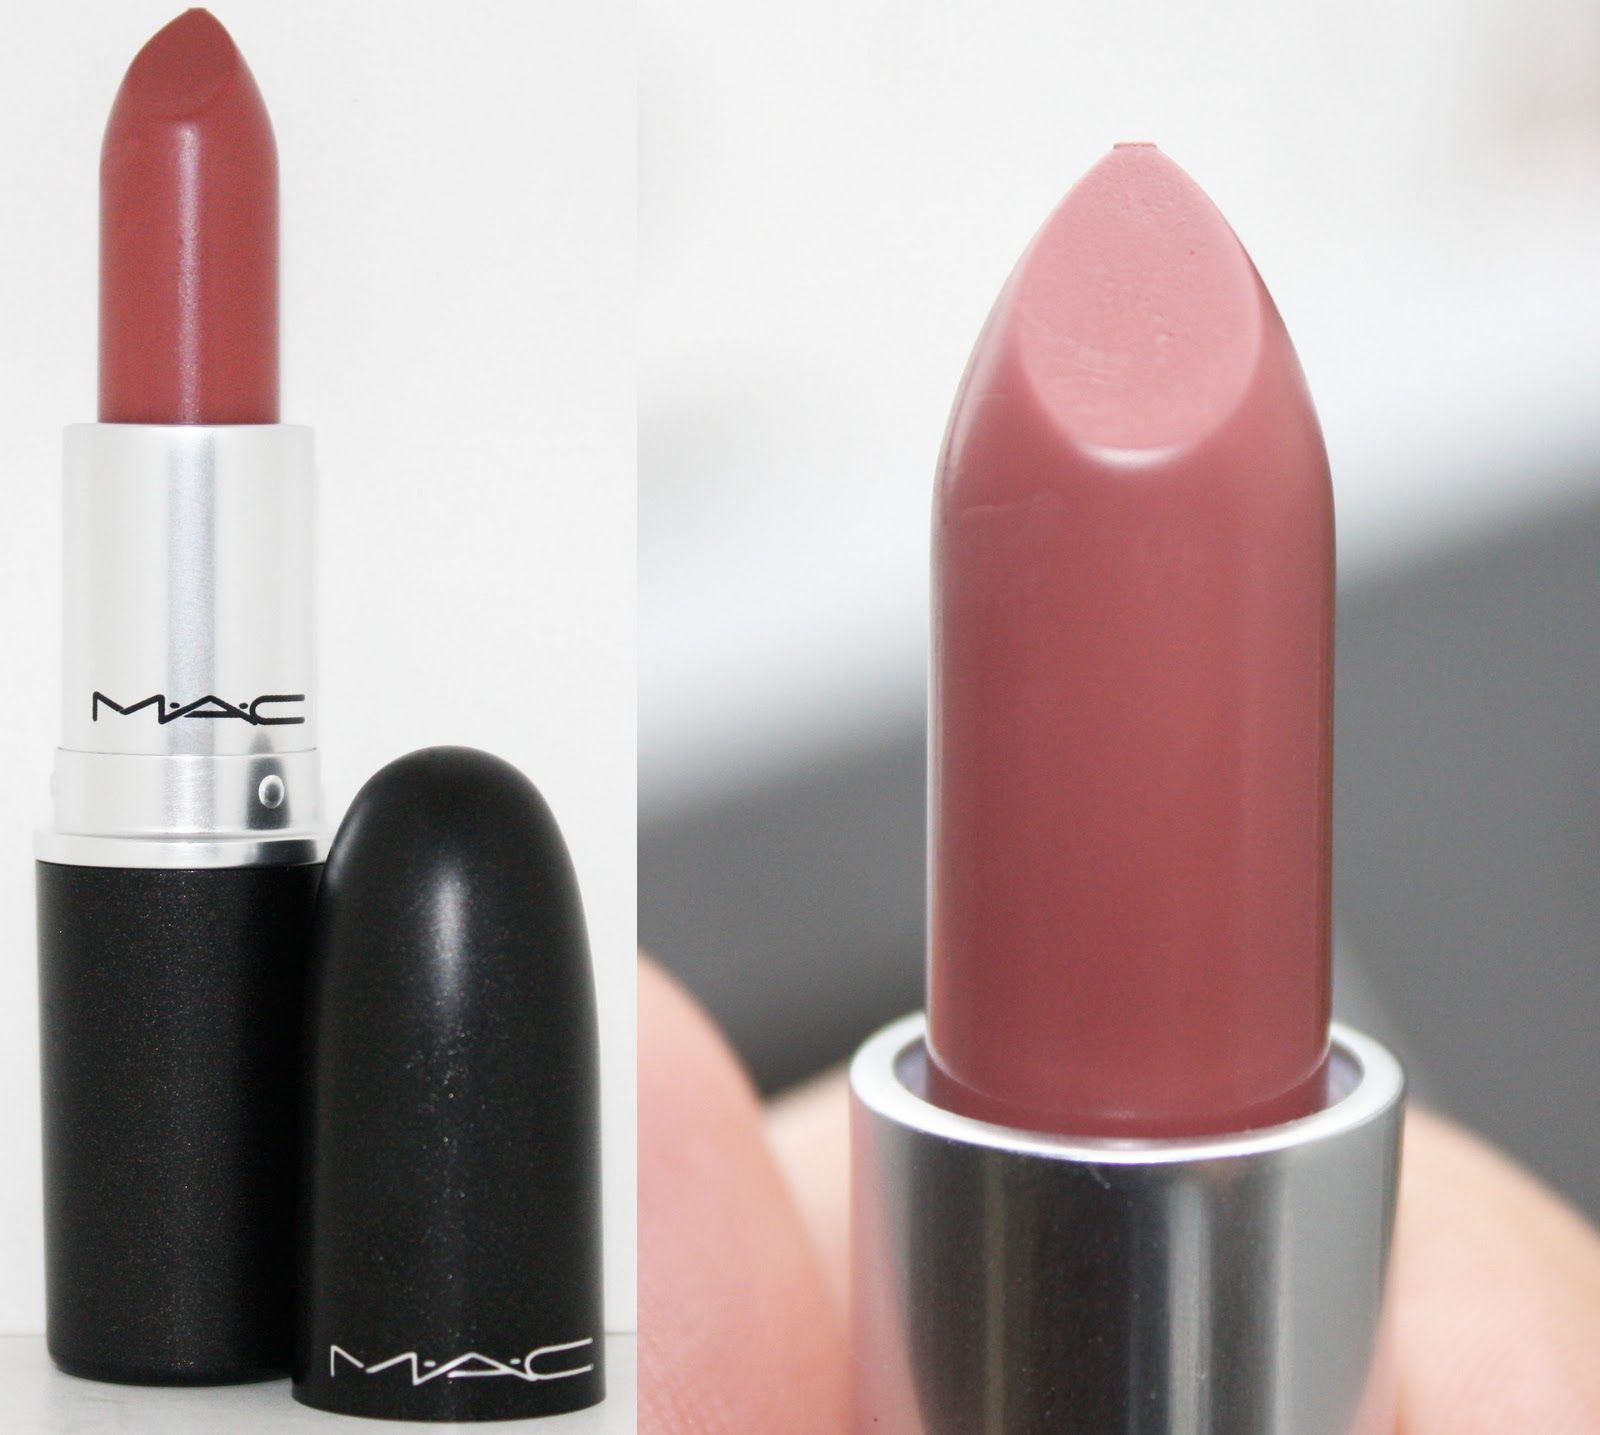 Mac Lipstick Faux This Lipstick Is A Great Natural -4026